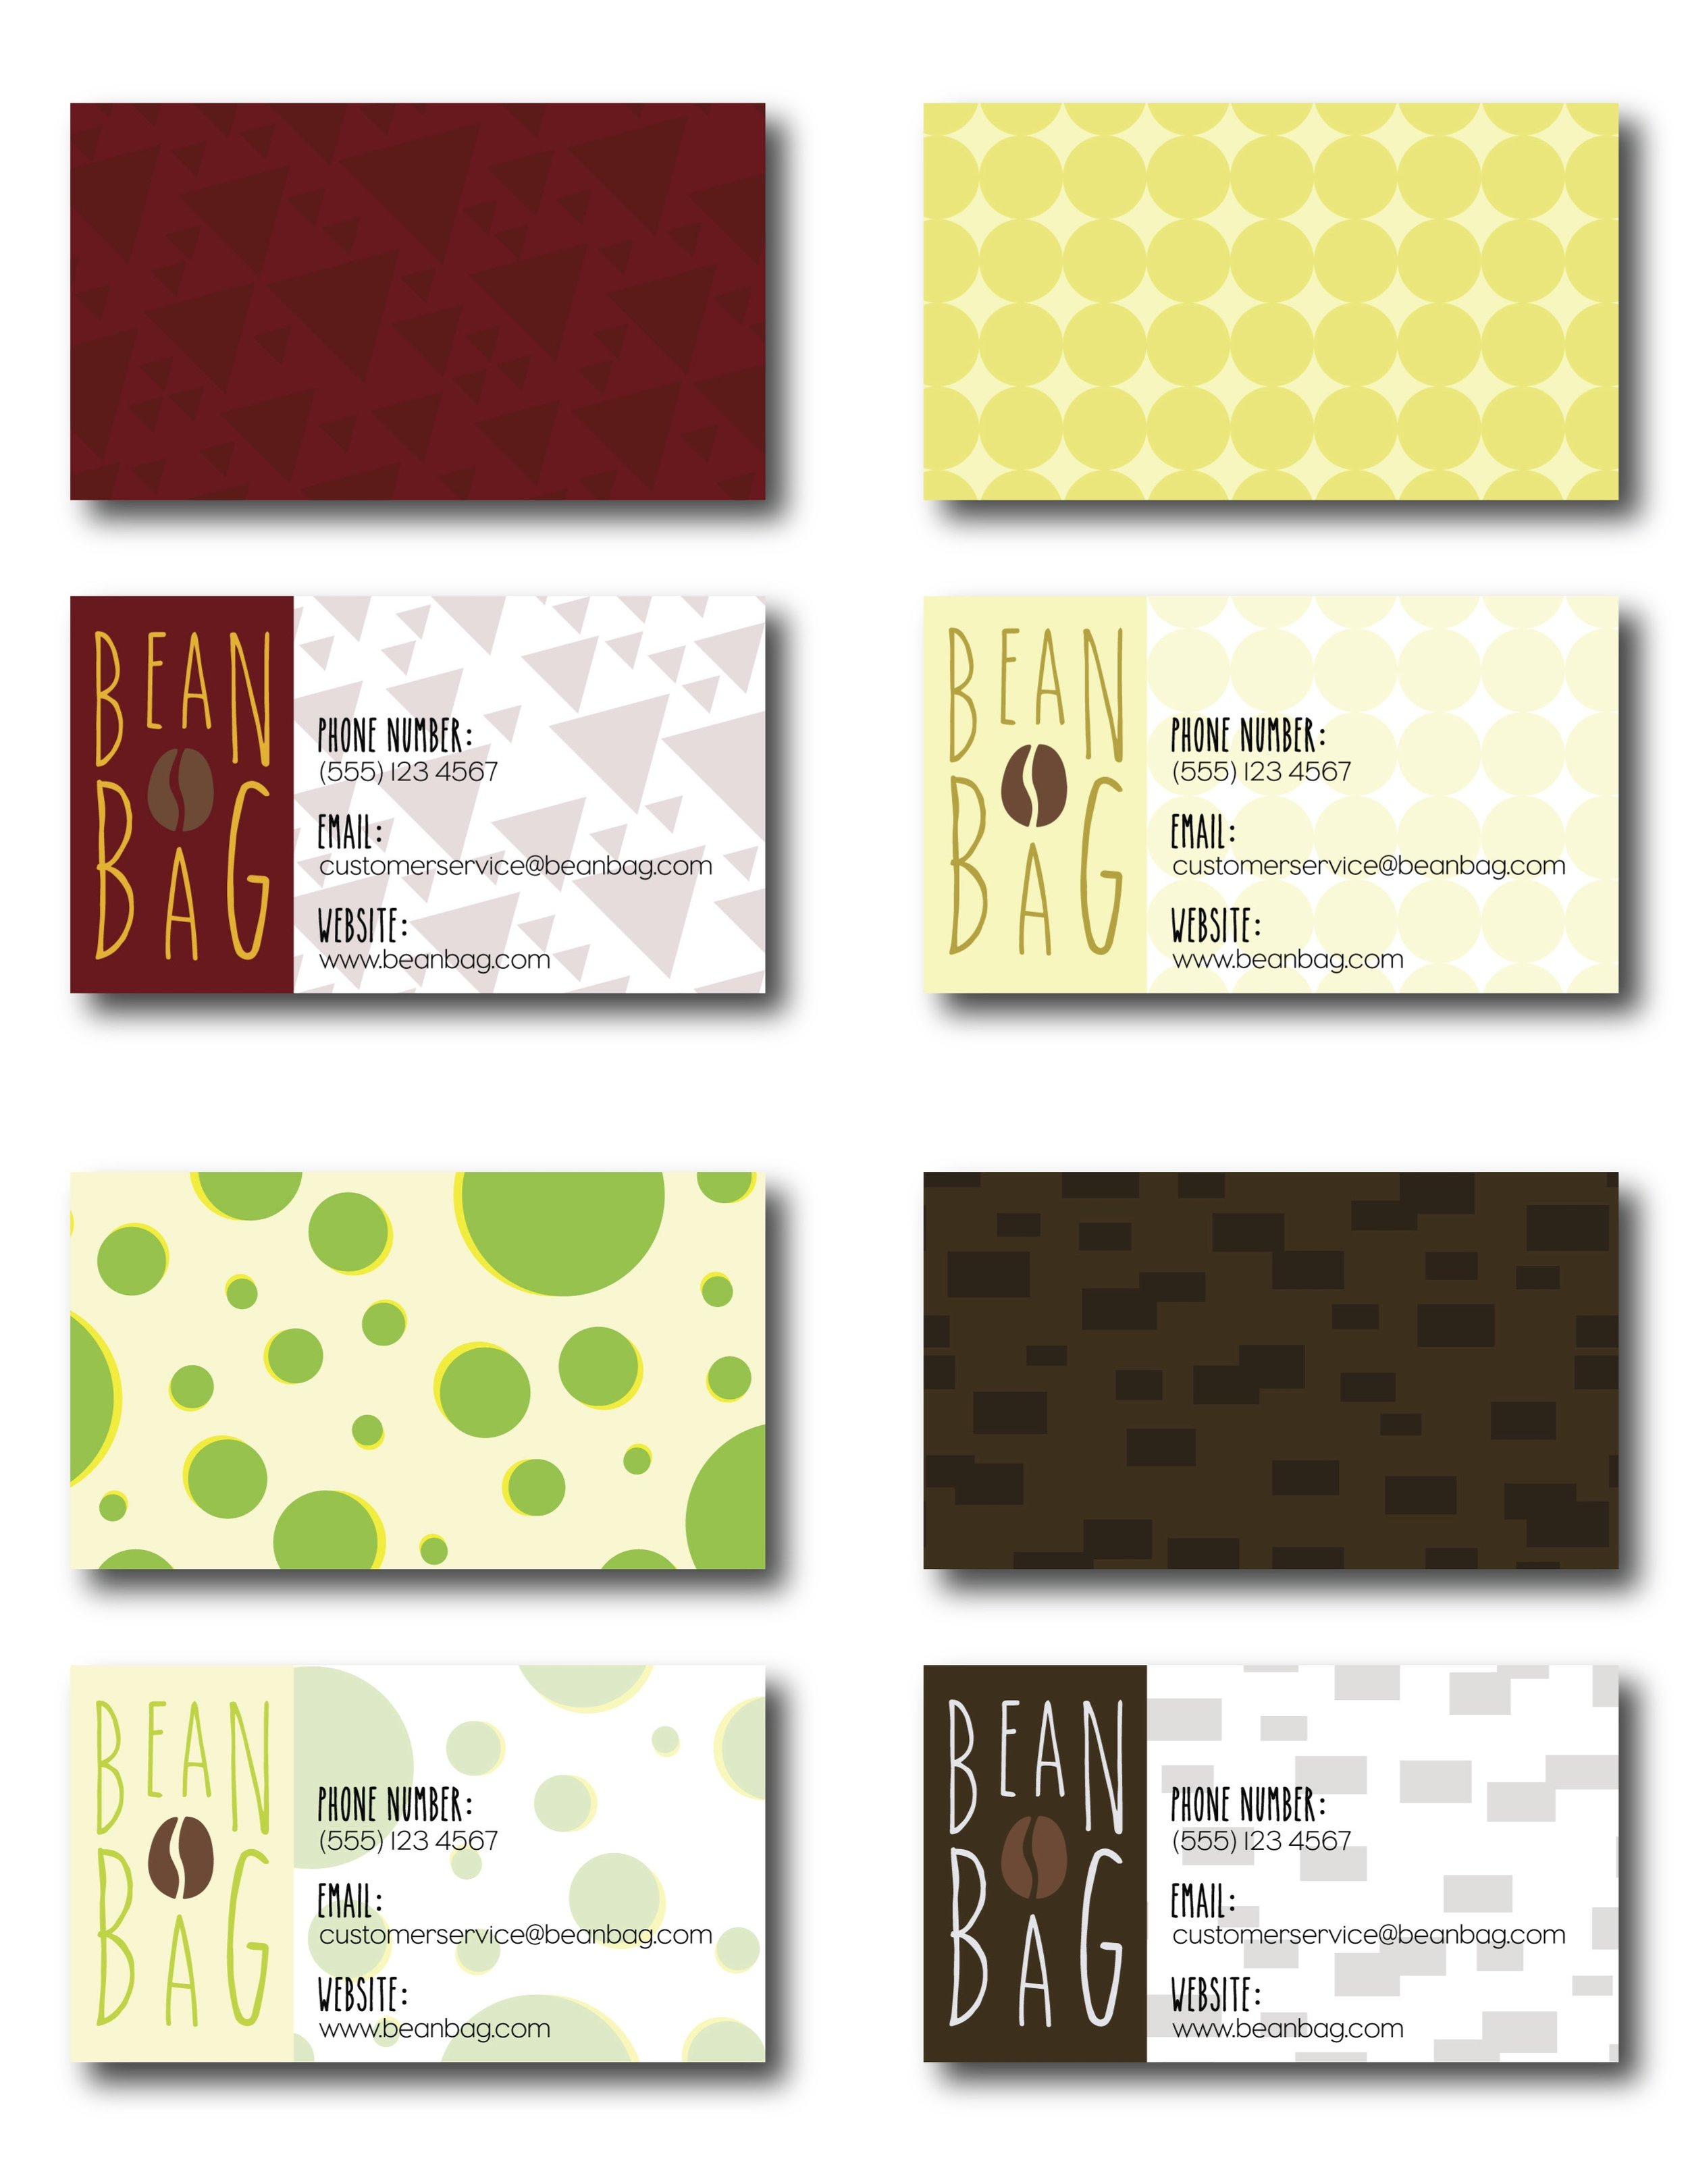 Bean Bag Business Cards